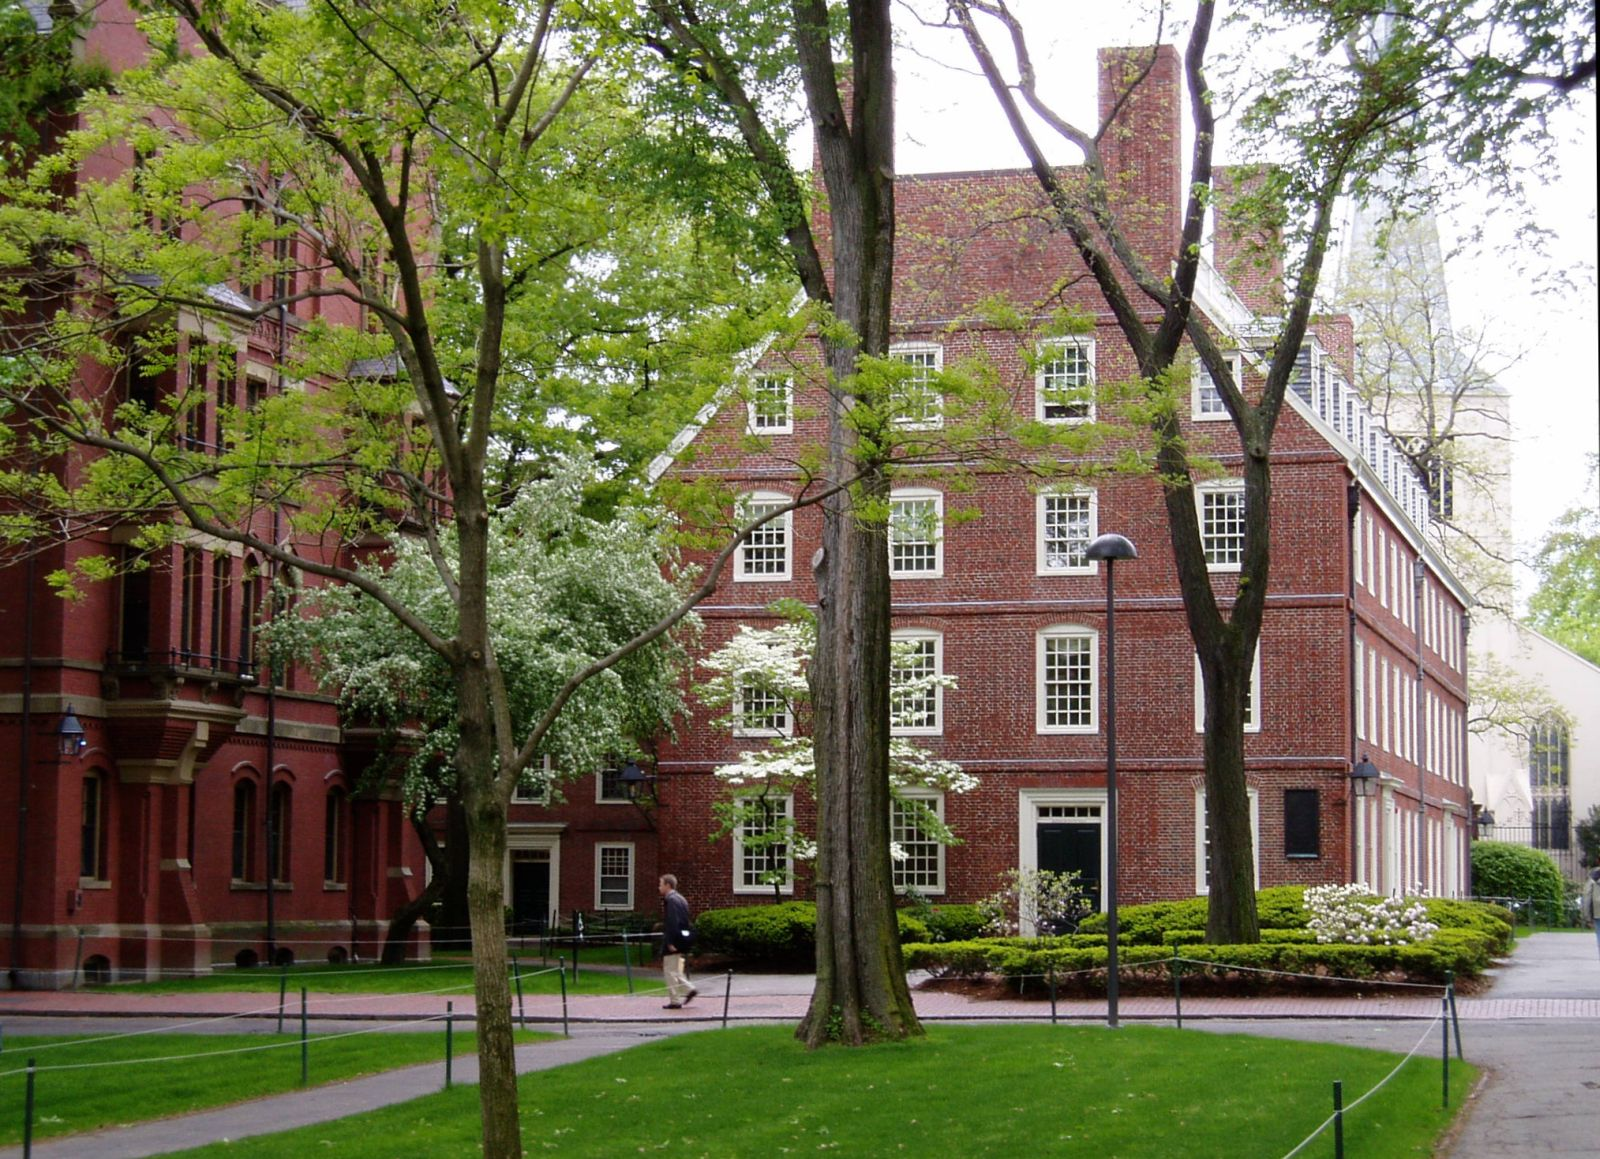 The NCE programme encourages eligible students to apply to the very best schools in the world, including Princeton, Harvard (pictured above), Yale, Brown, MIT, Stanford, and Caltech. Photo: Courtesy of Wikimedia Commons